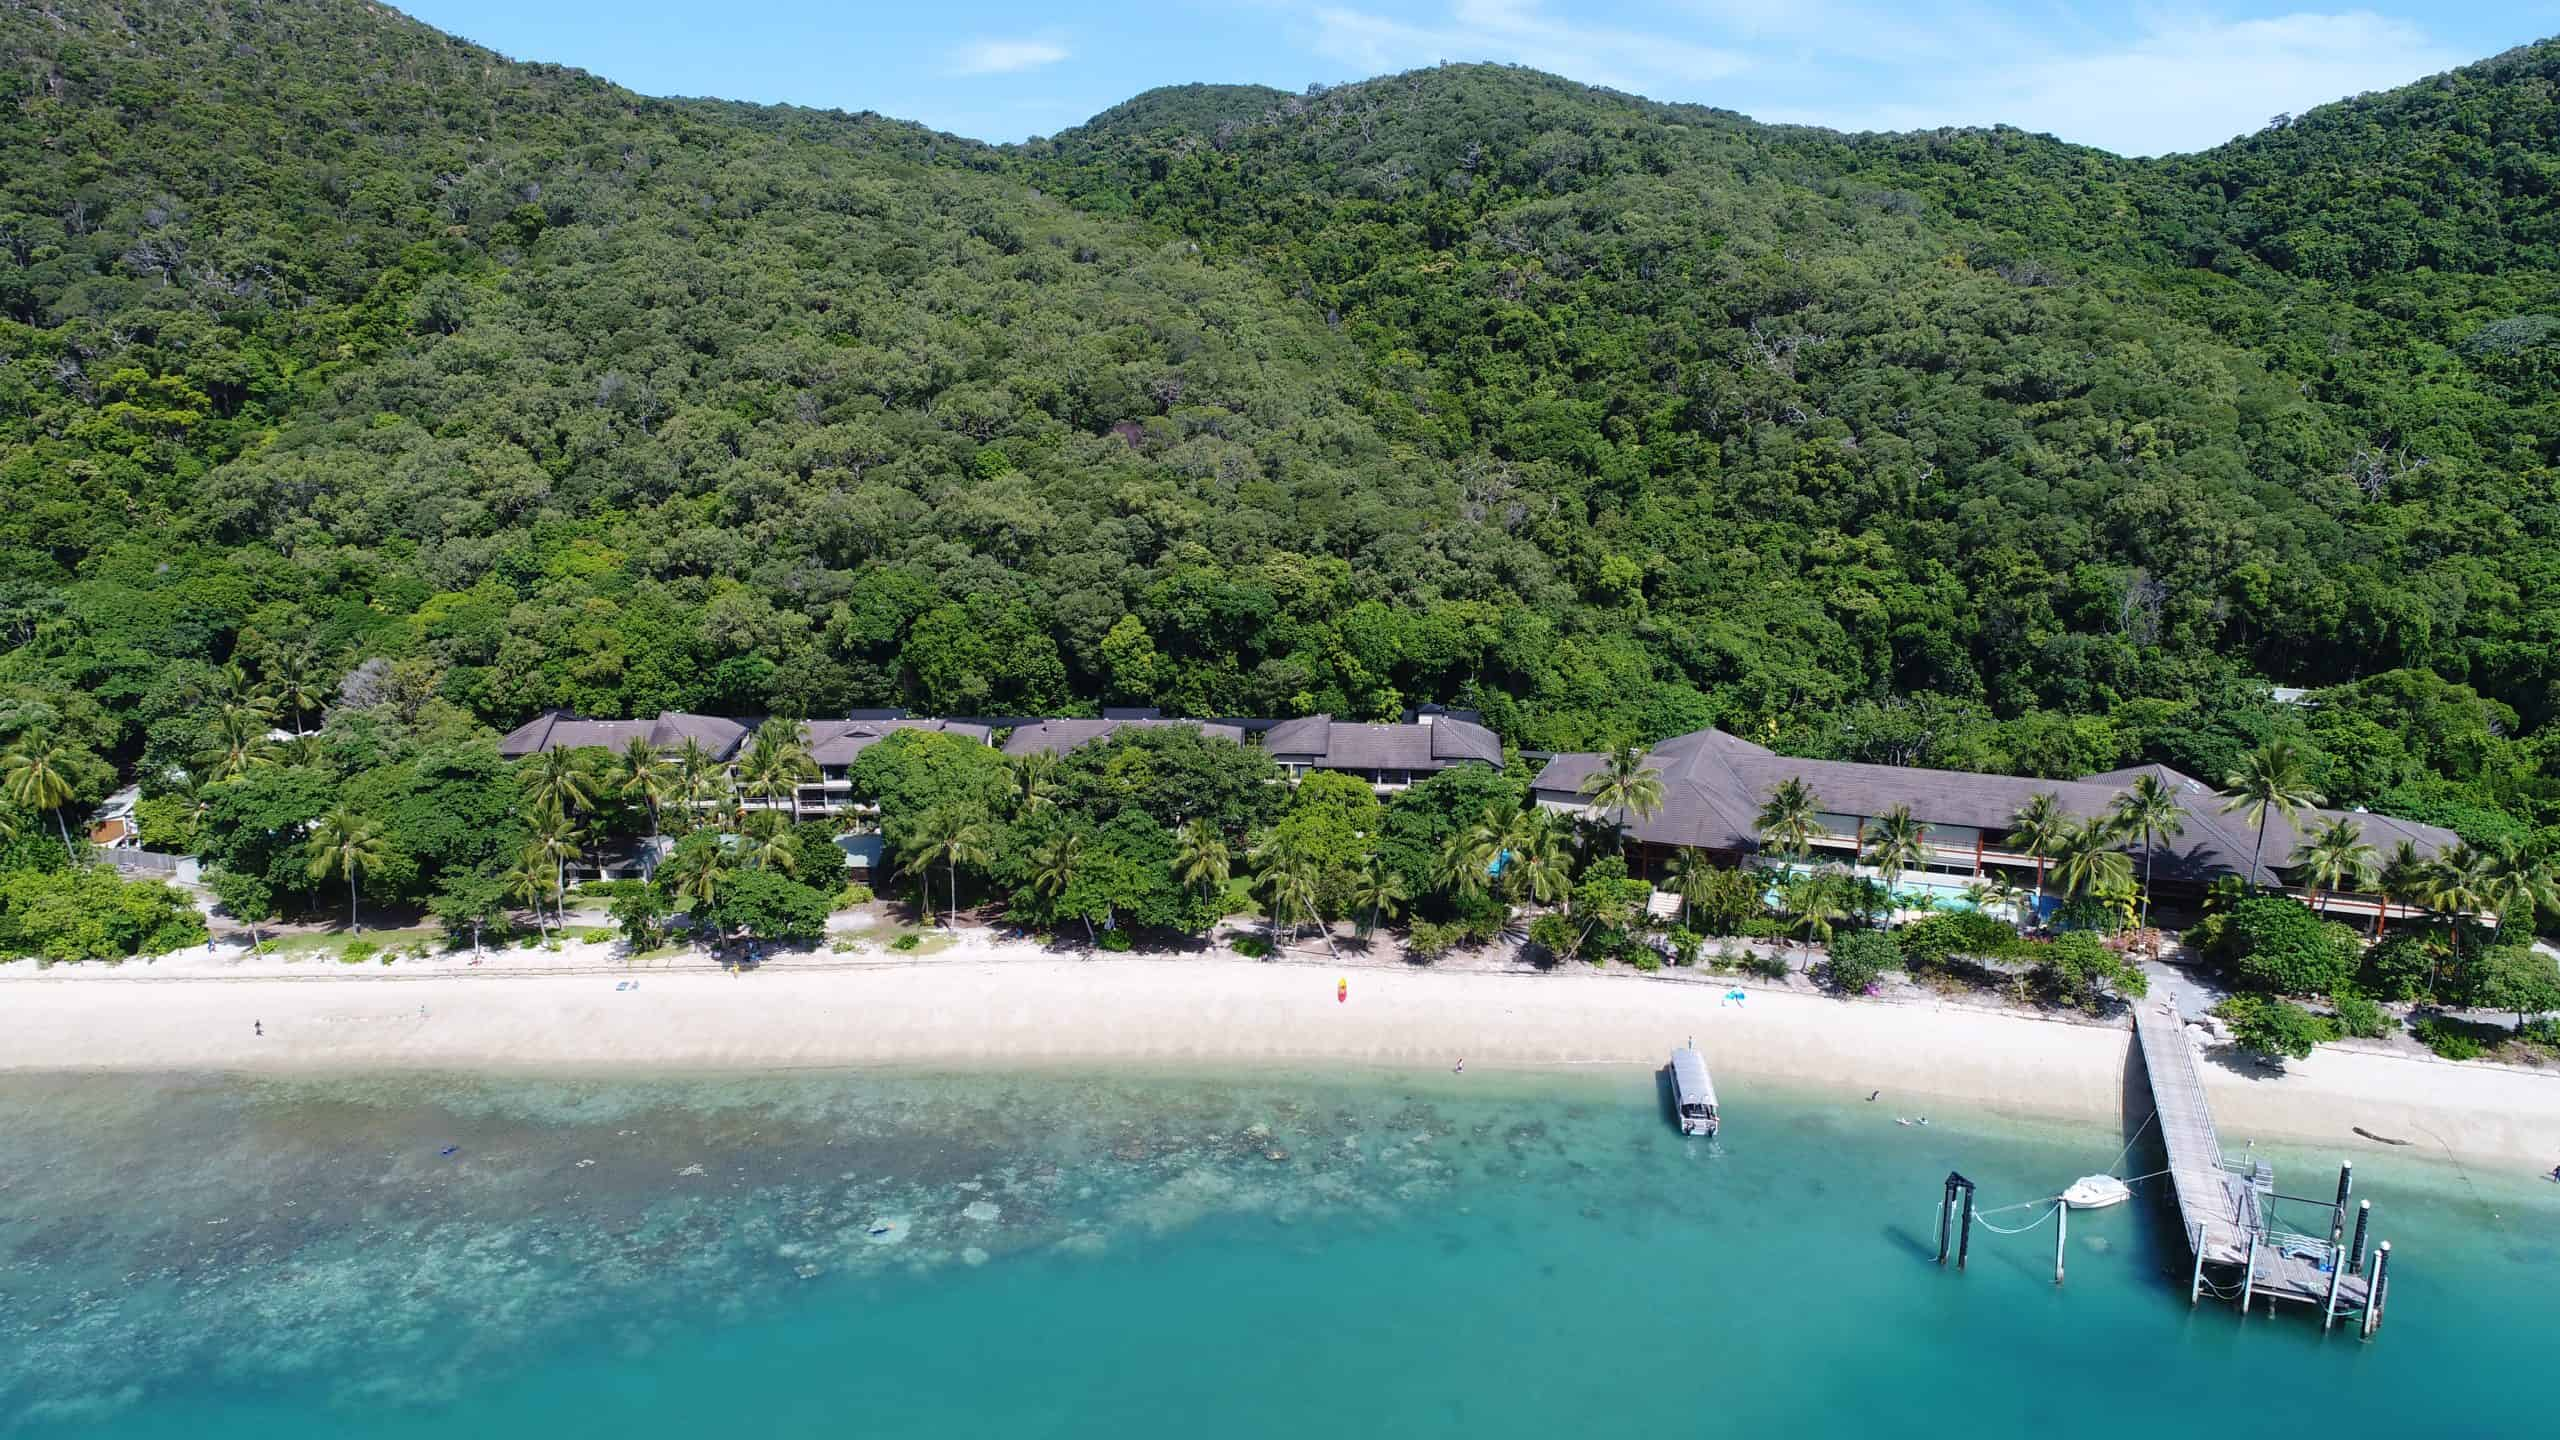 A weekend away at Fitzroy Island